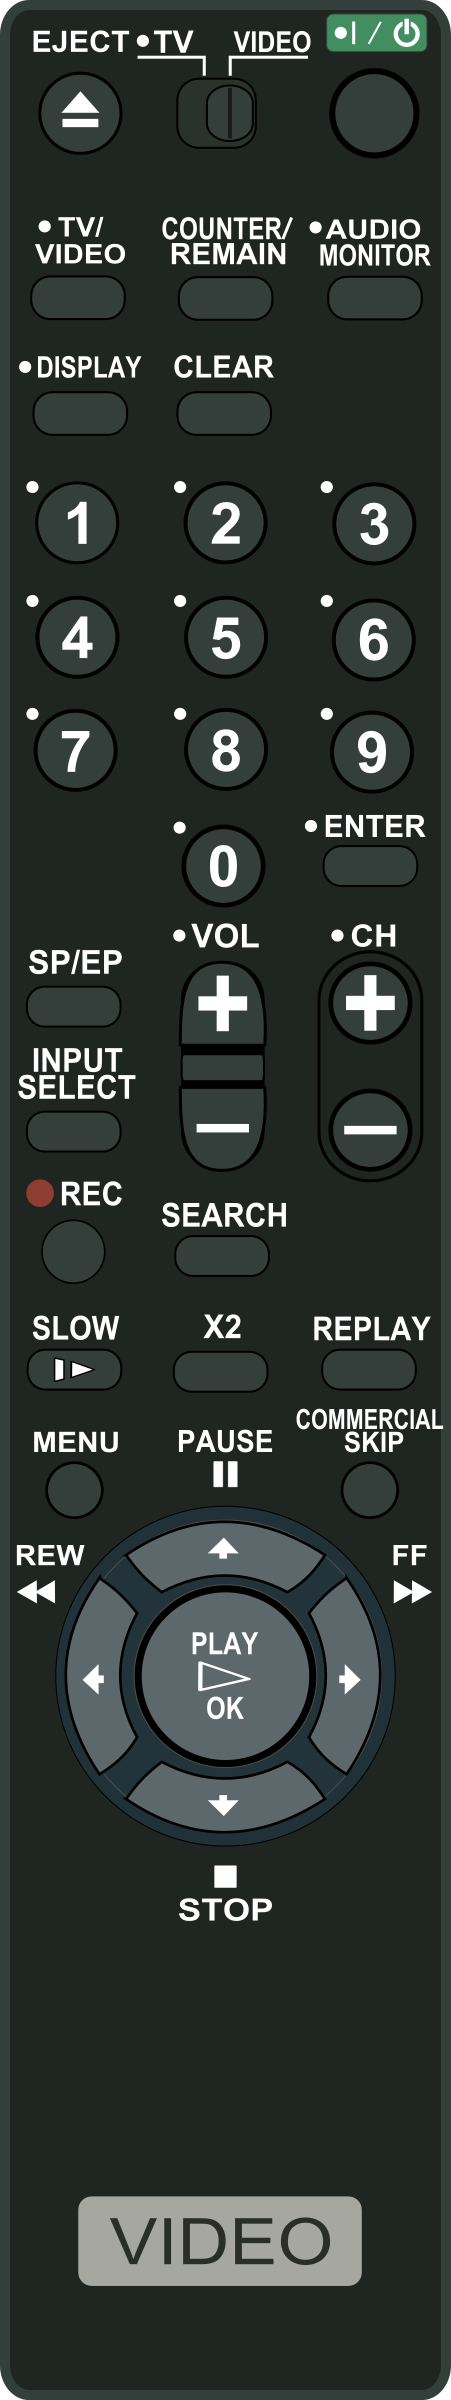 VCR Remote Control by Startright